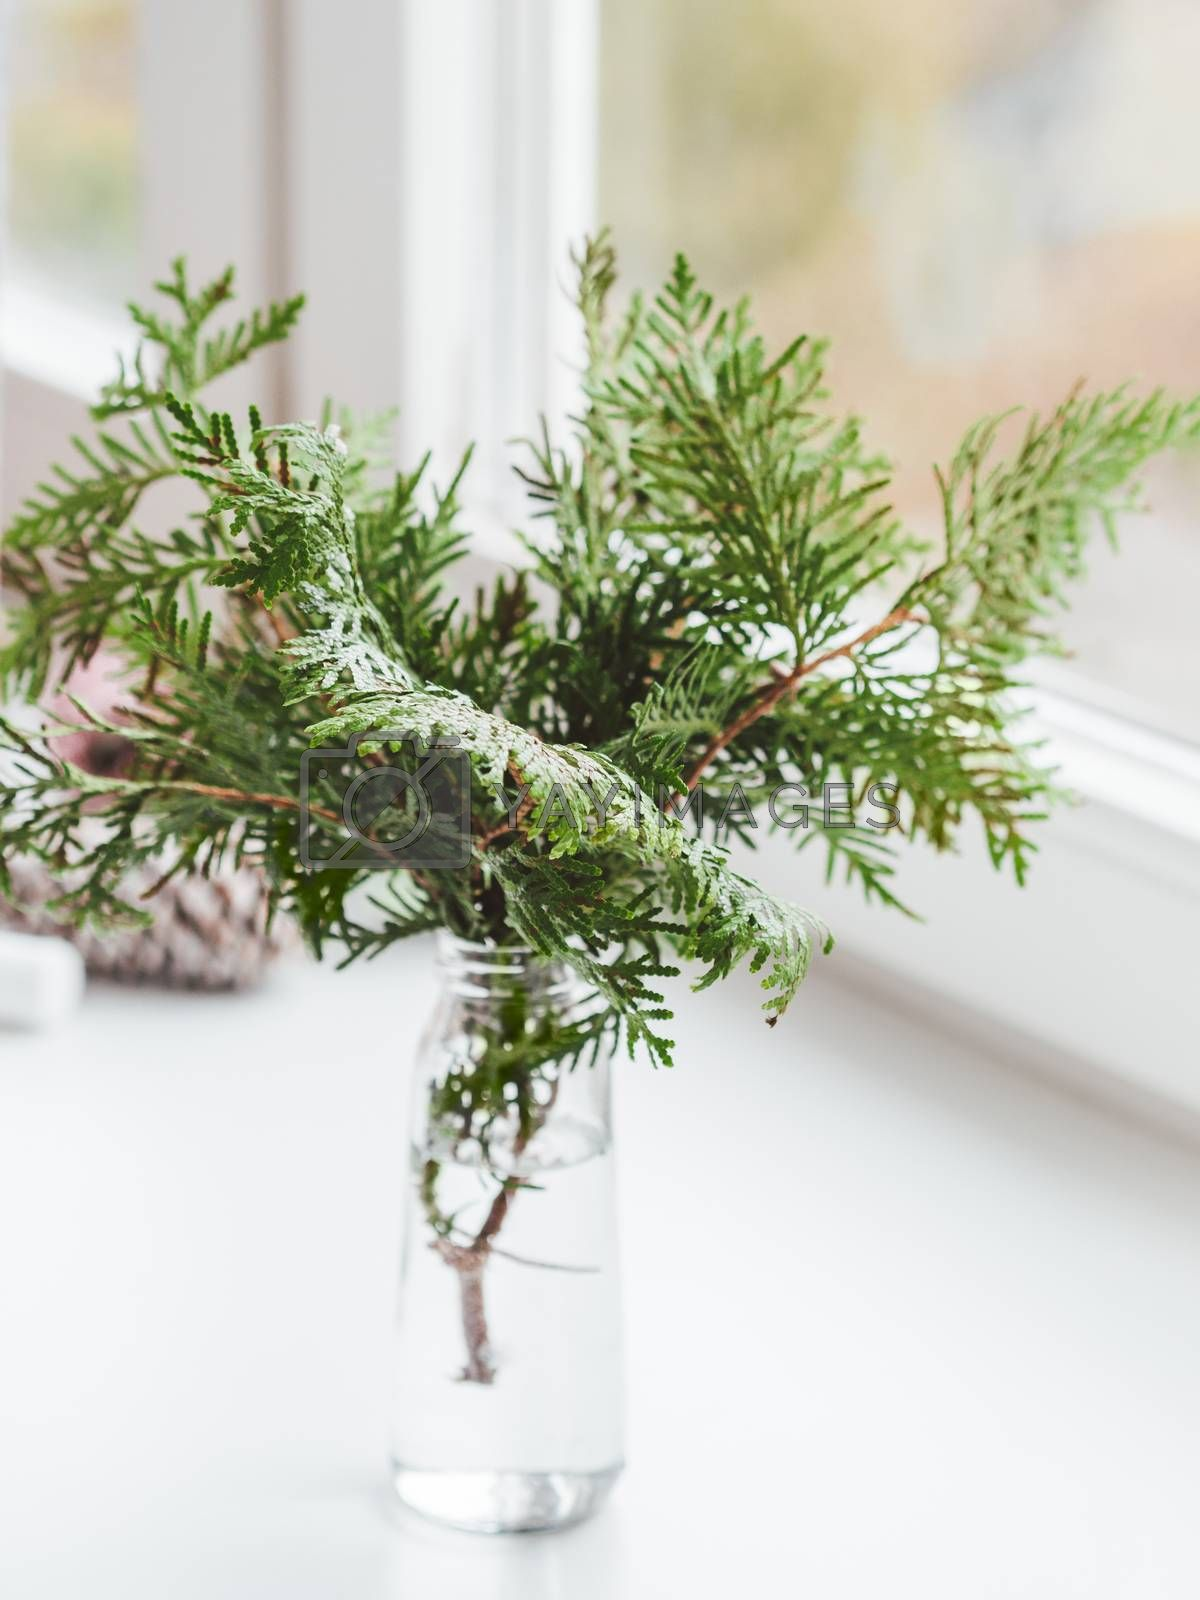 Vase with thuja branches stands on window sill. Sustainable alternative for Christmas tree. Caring for nature. Refusal to cut down spruce forests. New Year celebration.